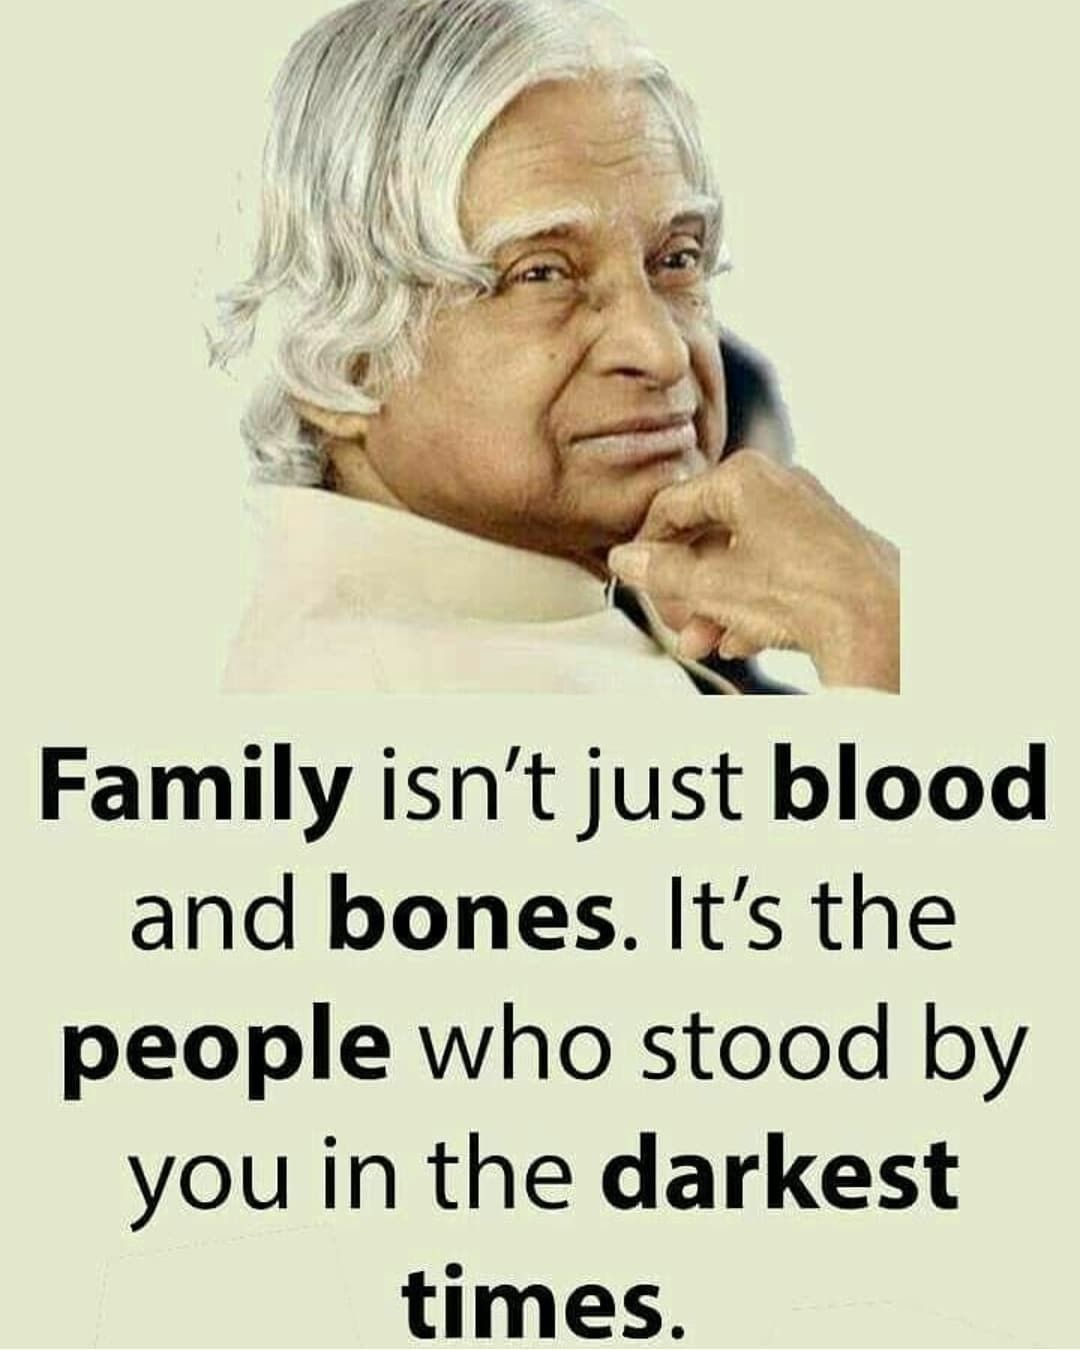 Abdul Kalam Greatest quotes of all time